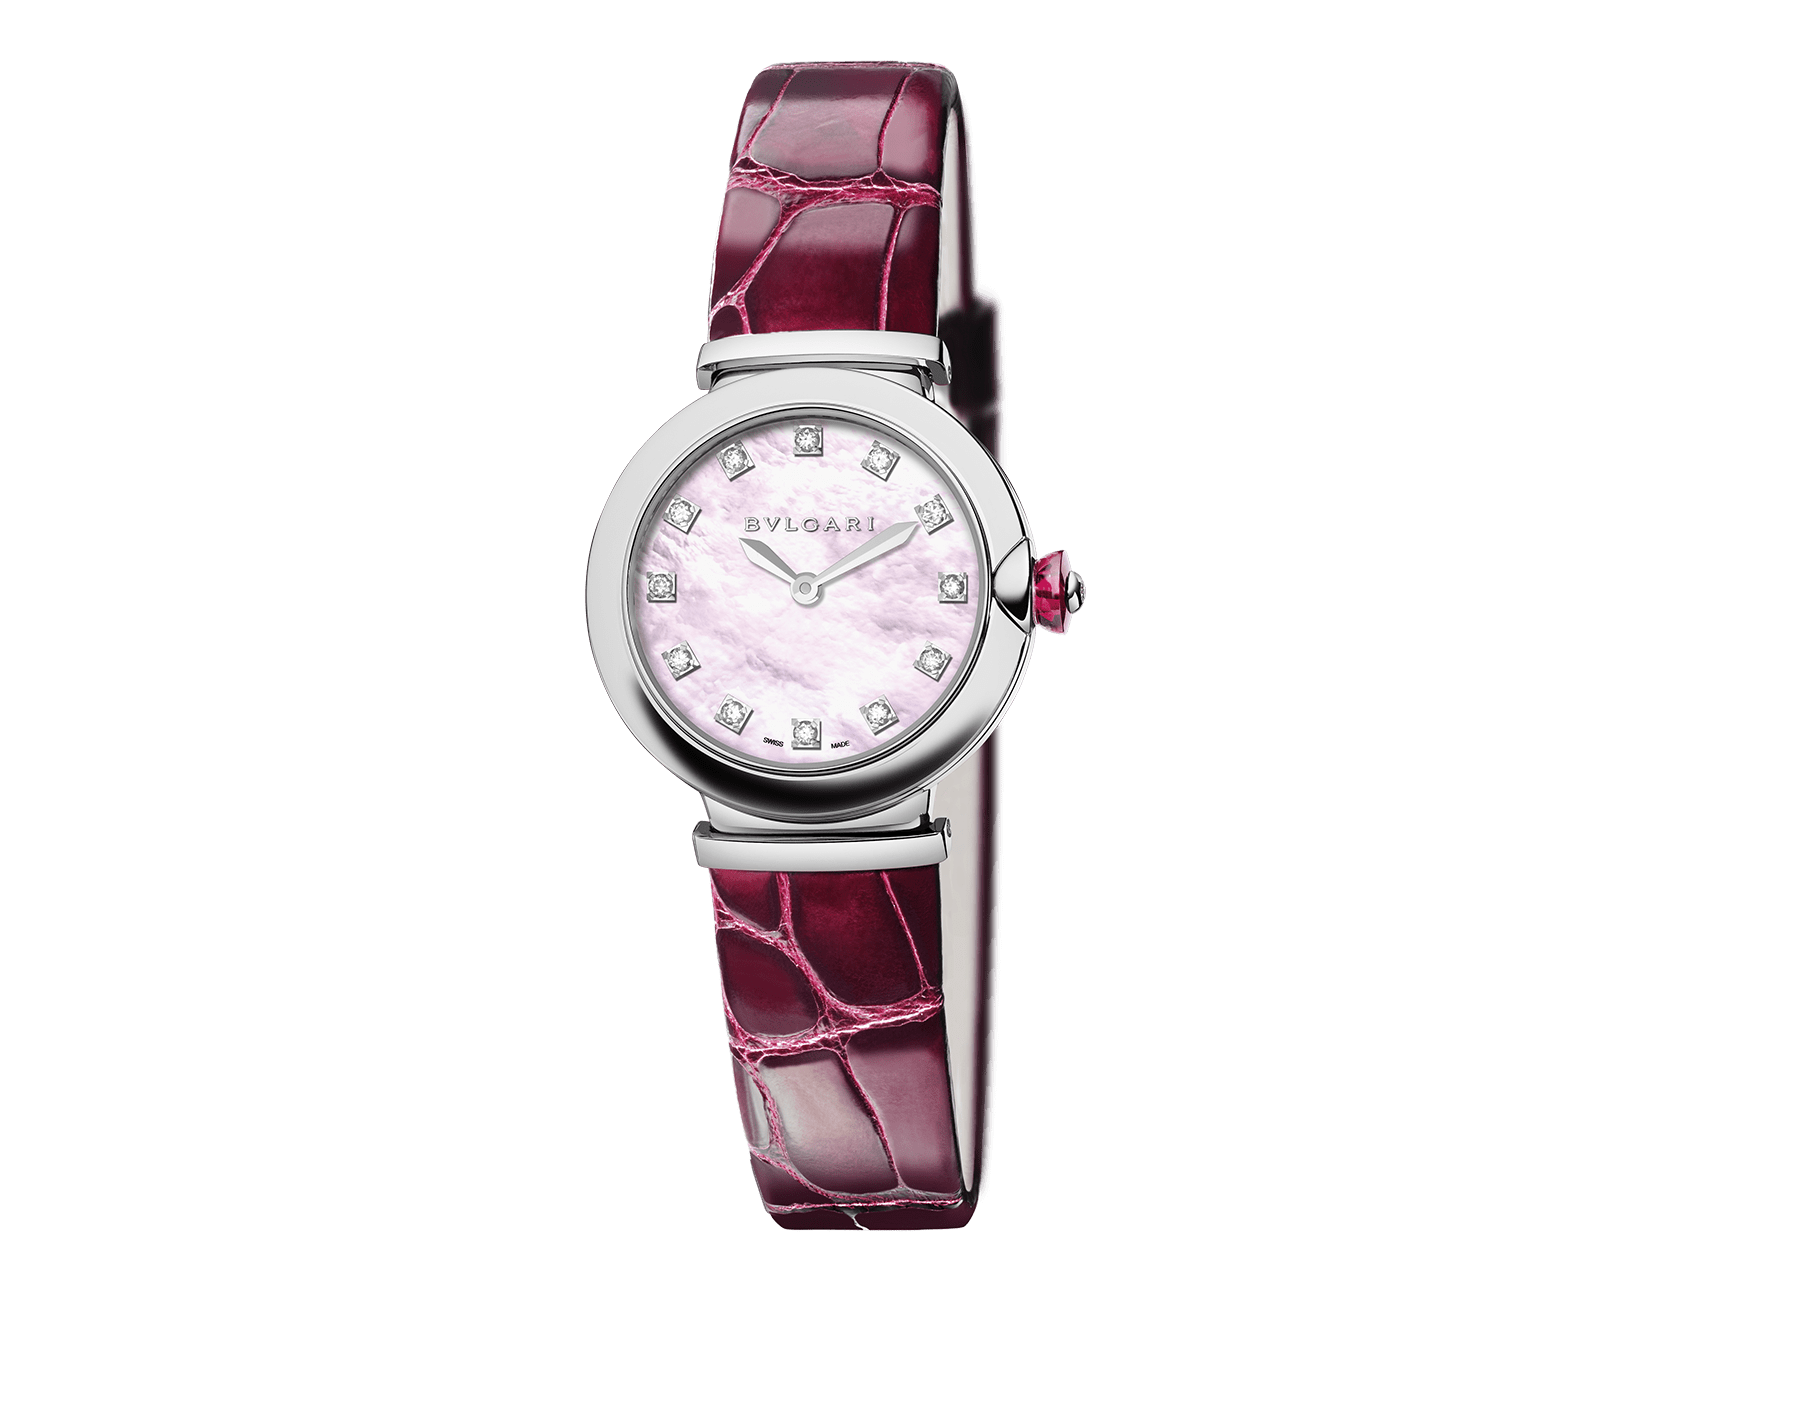 LVCEA watch with stainless steel case, pink mother-of-pearl dial, diamond indexes and burgundy alligator bracelet. 102608 image 1